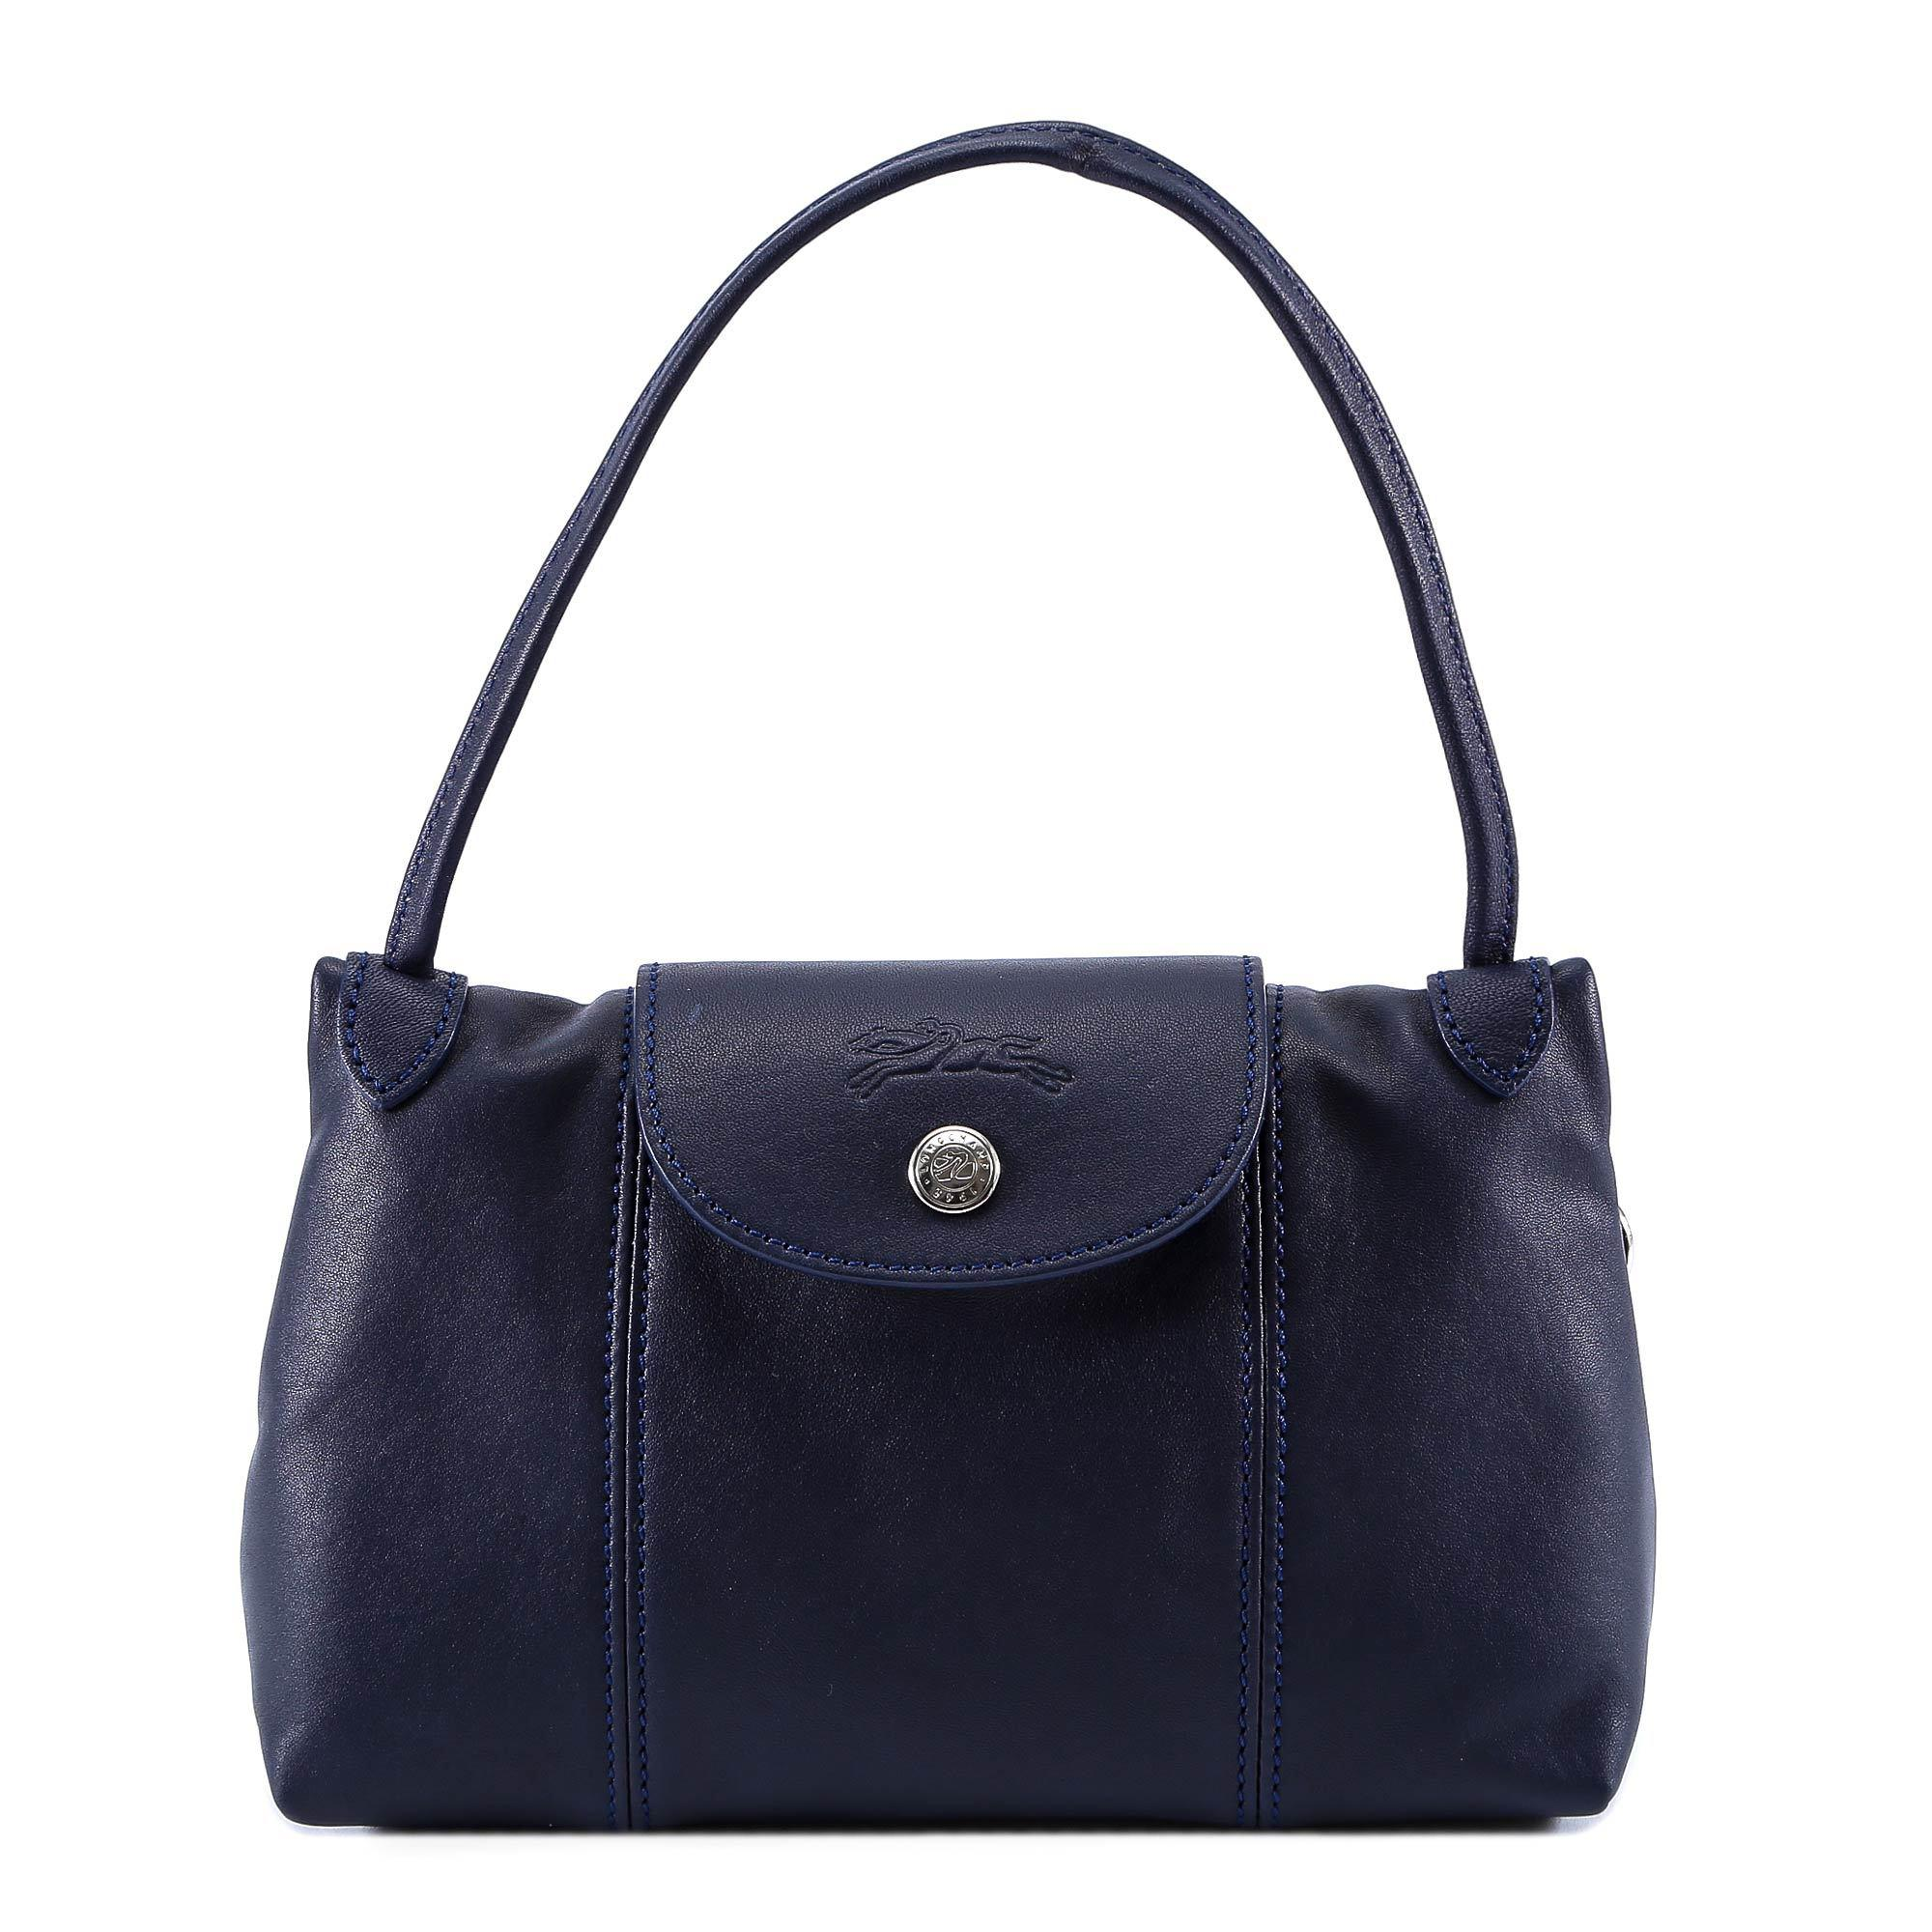 80b3caa613a Gallery. Previously sold at: Cettire · Women's Longchamp Le Pliage